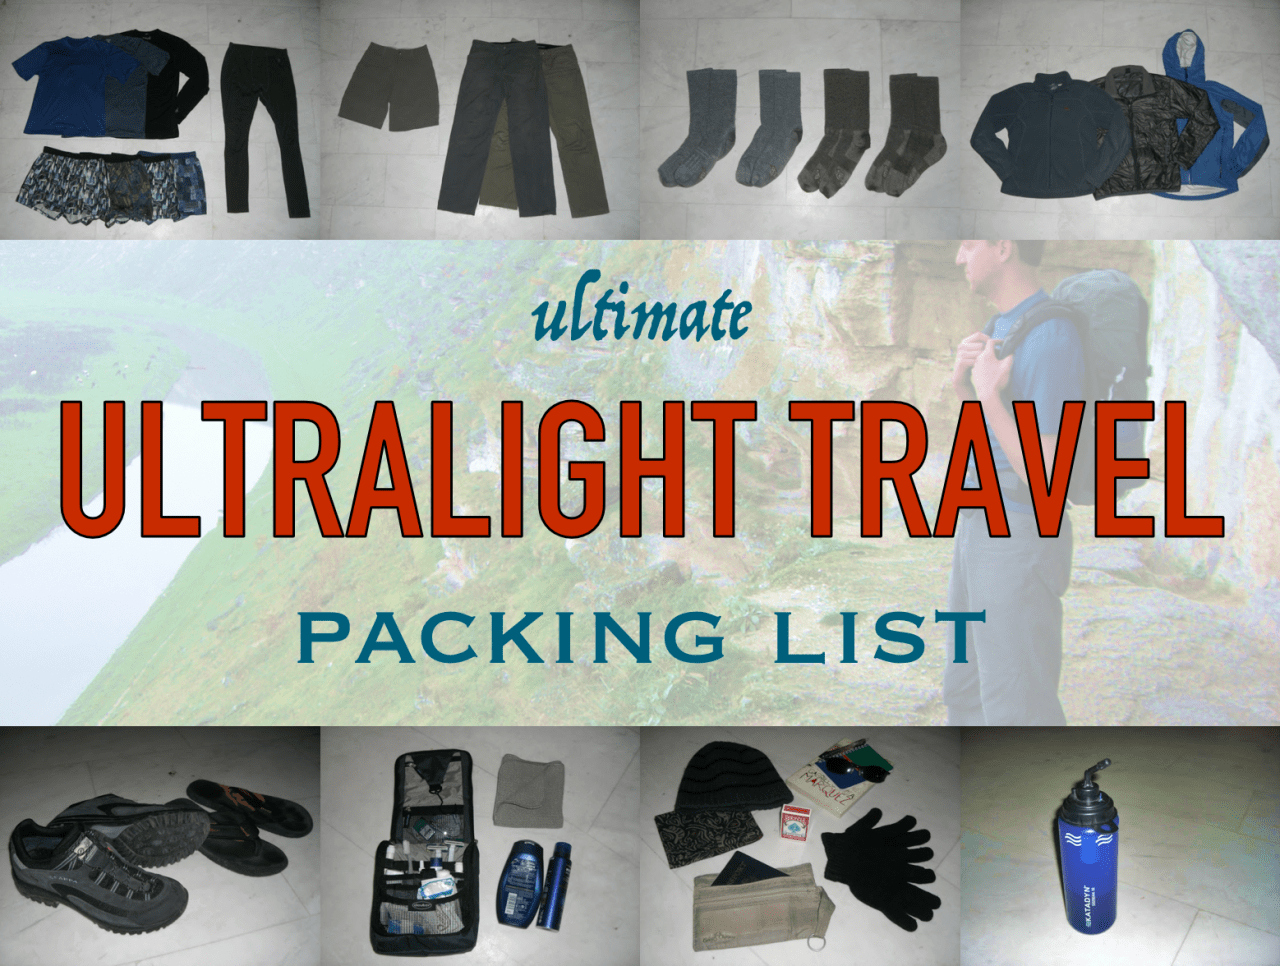 Ultimate Cruise Packing List Lovely Ultimate Ultralight Travel Packing List – Snarky Nomad